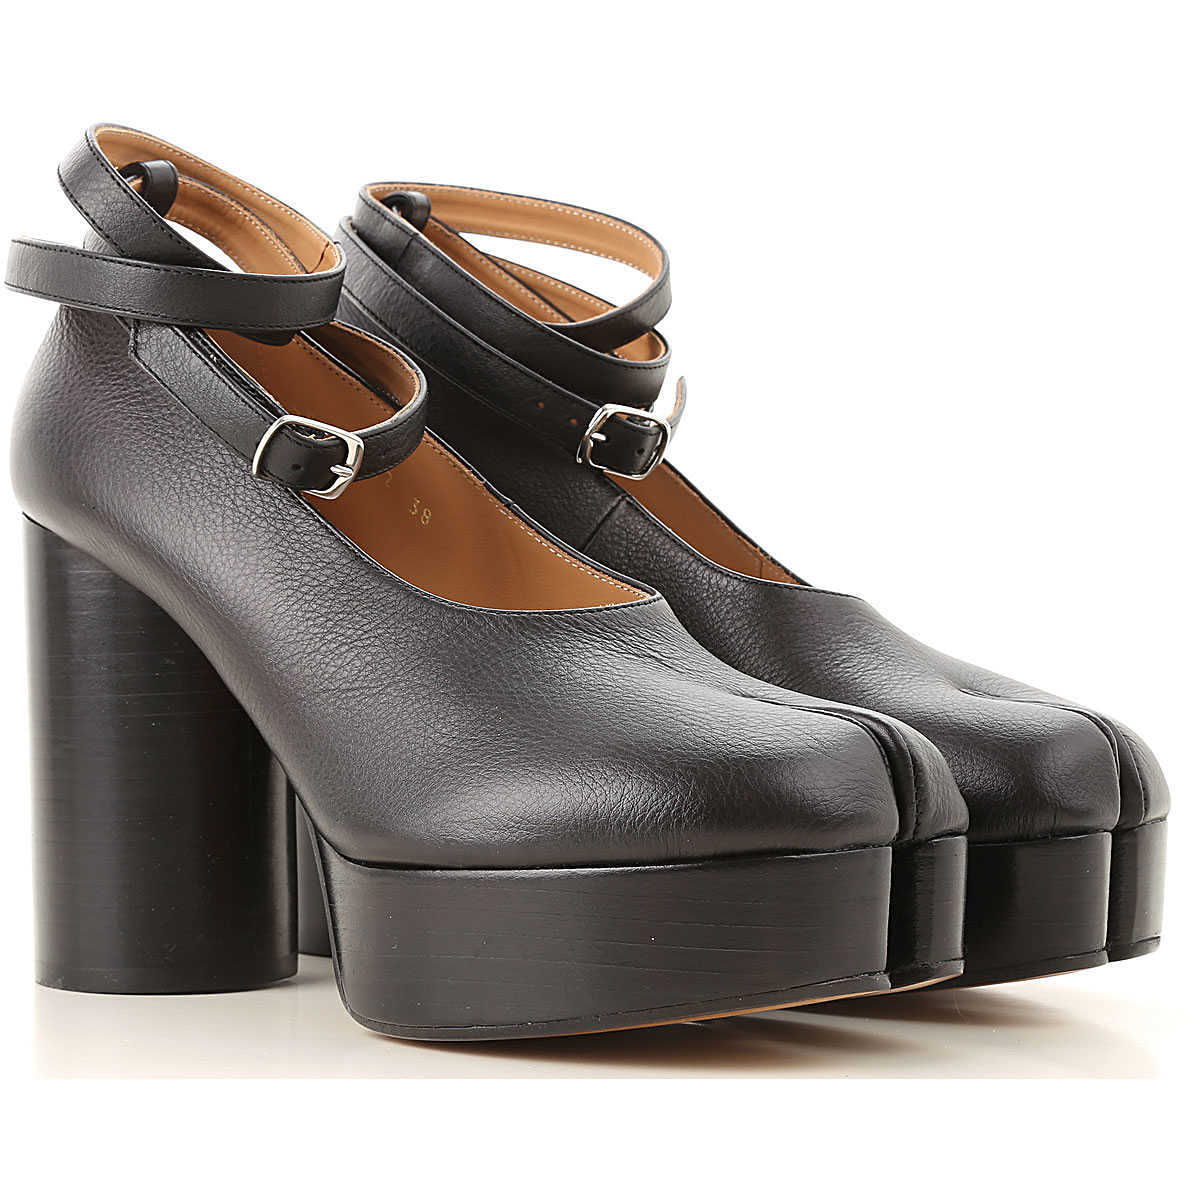 Maison Martin Margiela Wedges for Women On Sale Black UK - GOOFASH